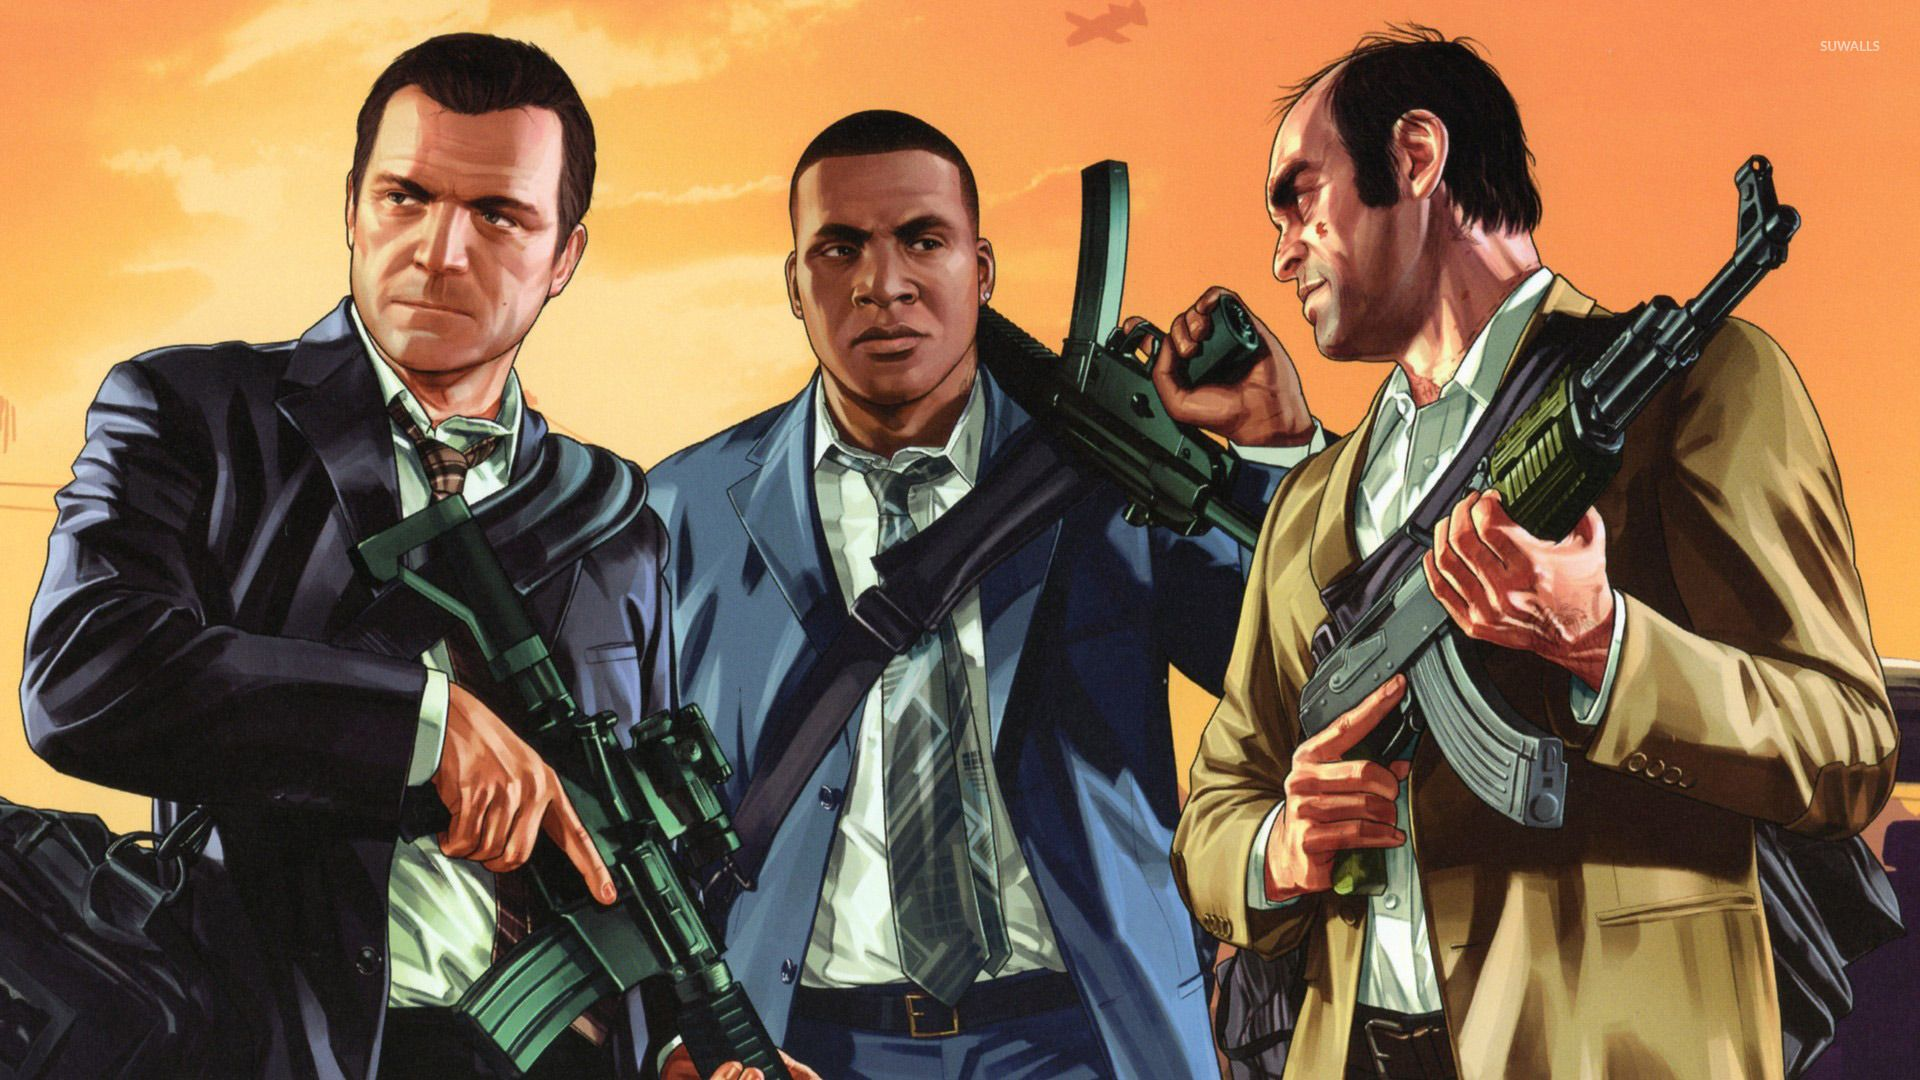 GTA V Wallpaper HD Grand theft auto, Gta, Rockstar games